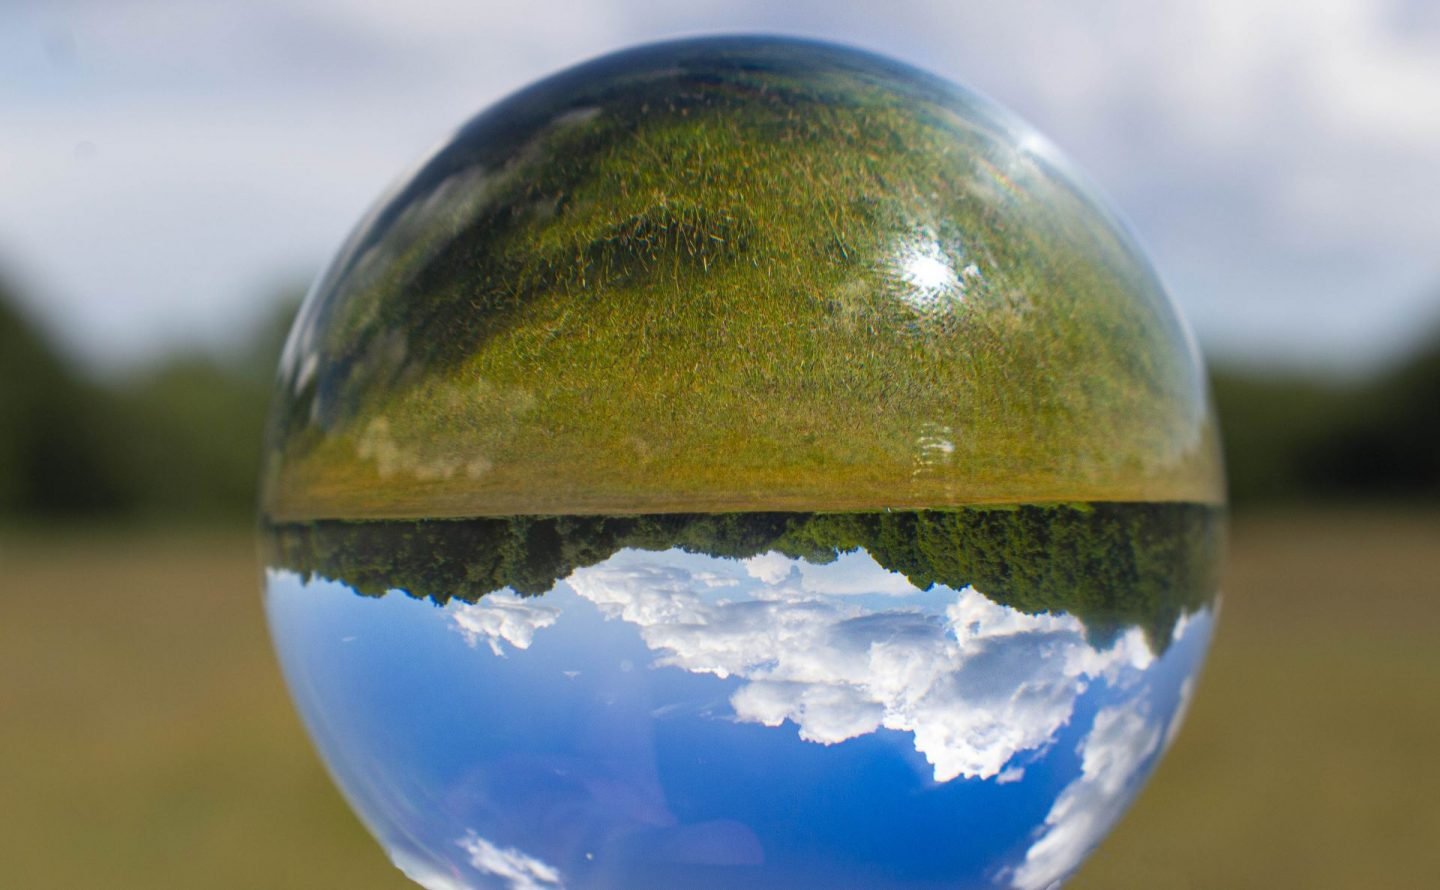 Landscape image taken with a Lensball